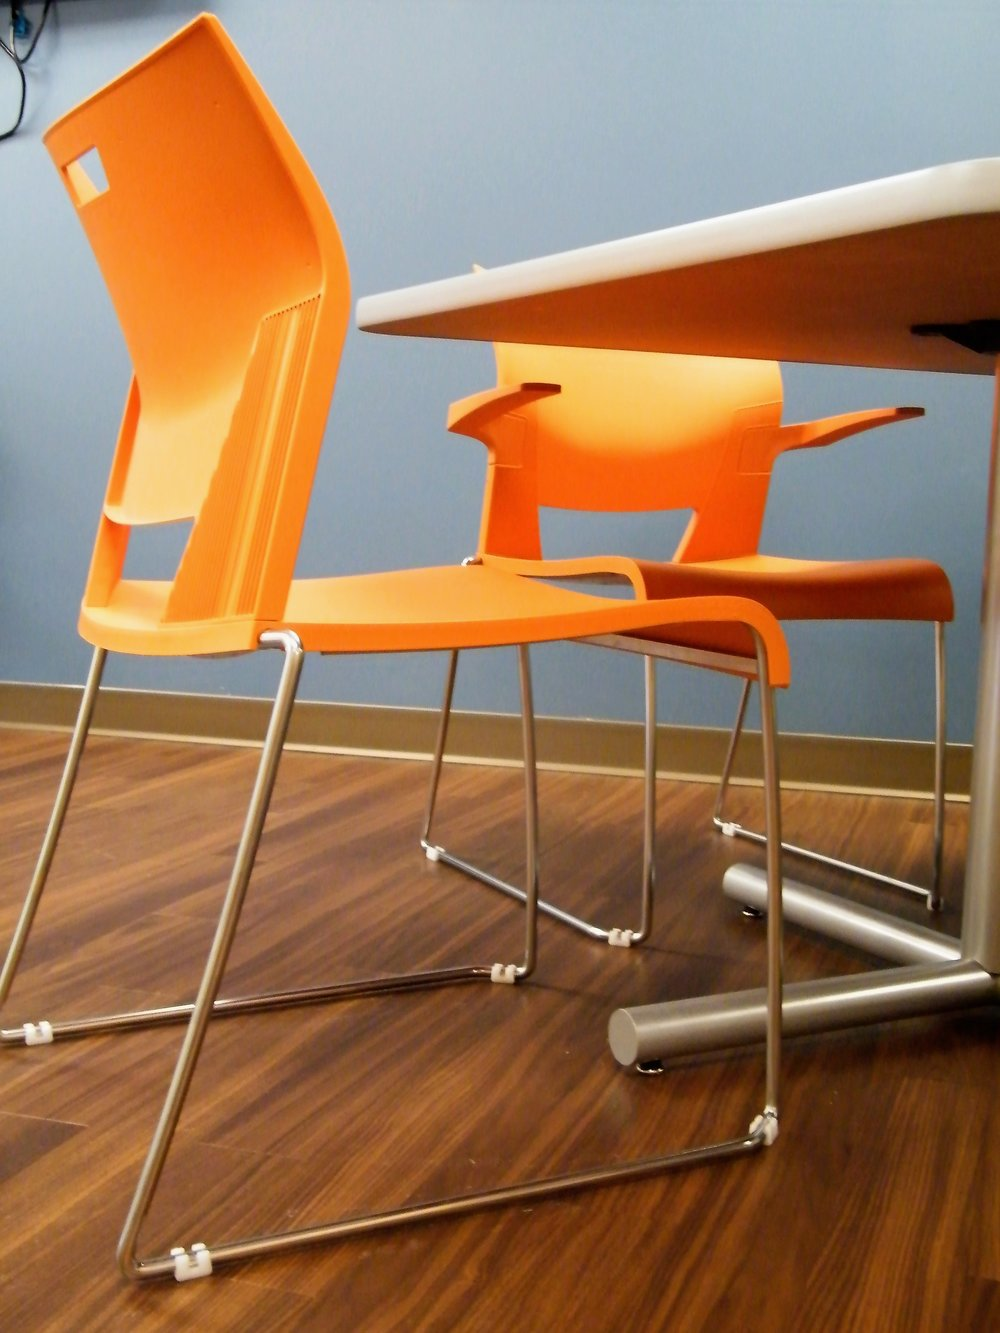 Orange Duet Chairs with Gliders